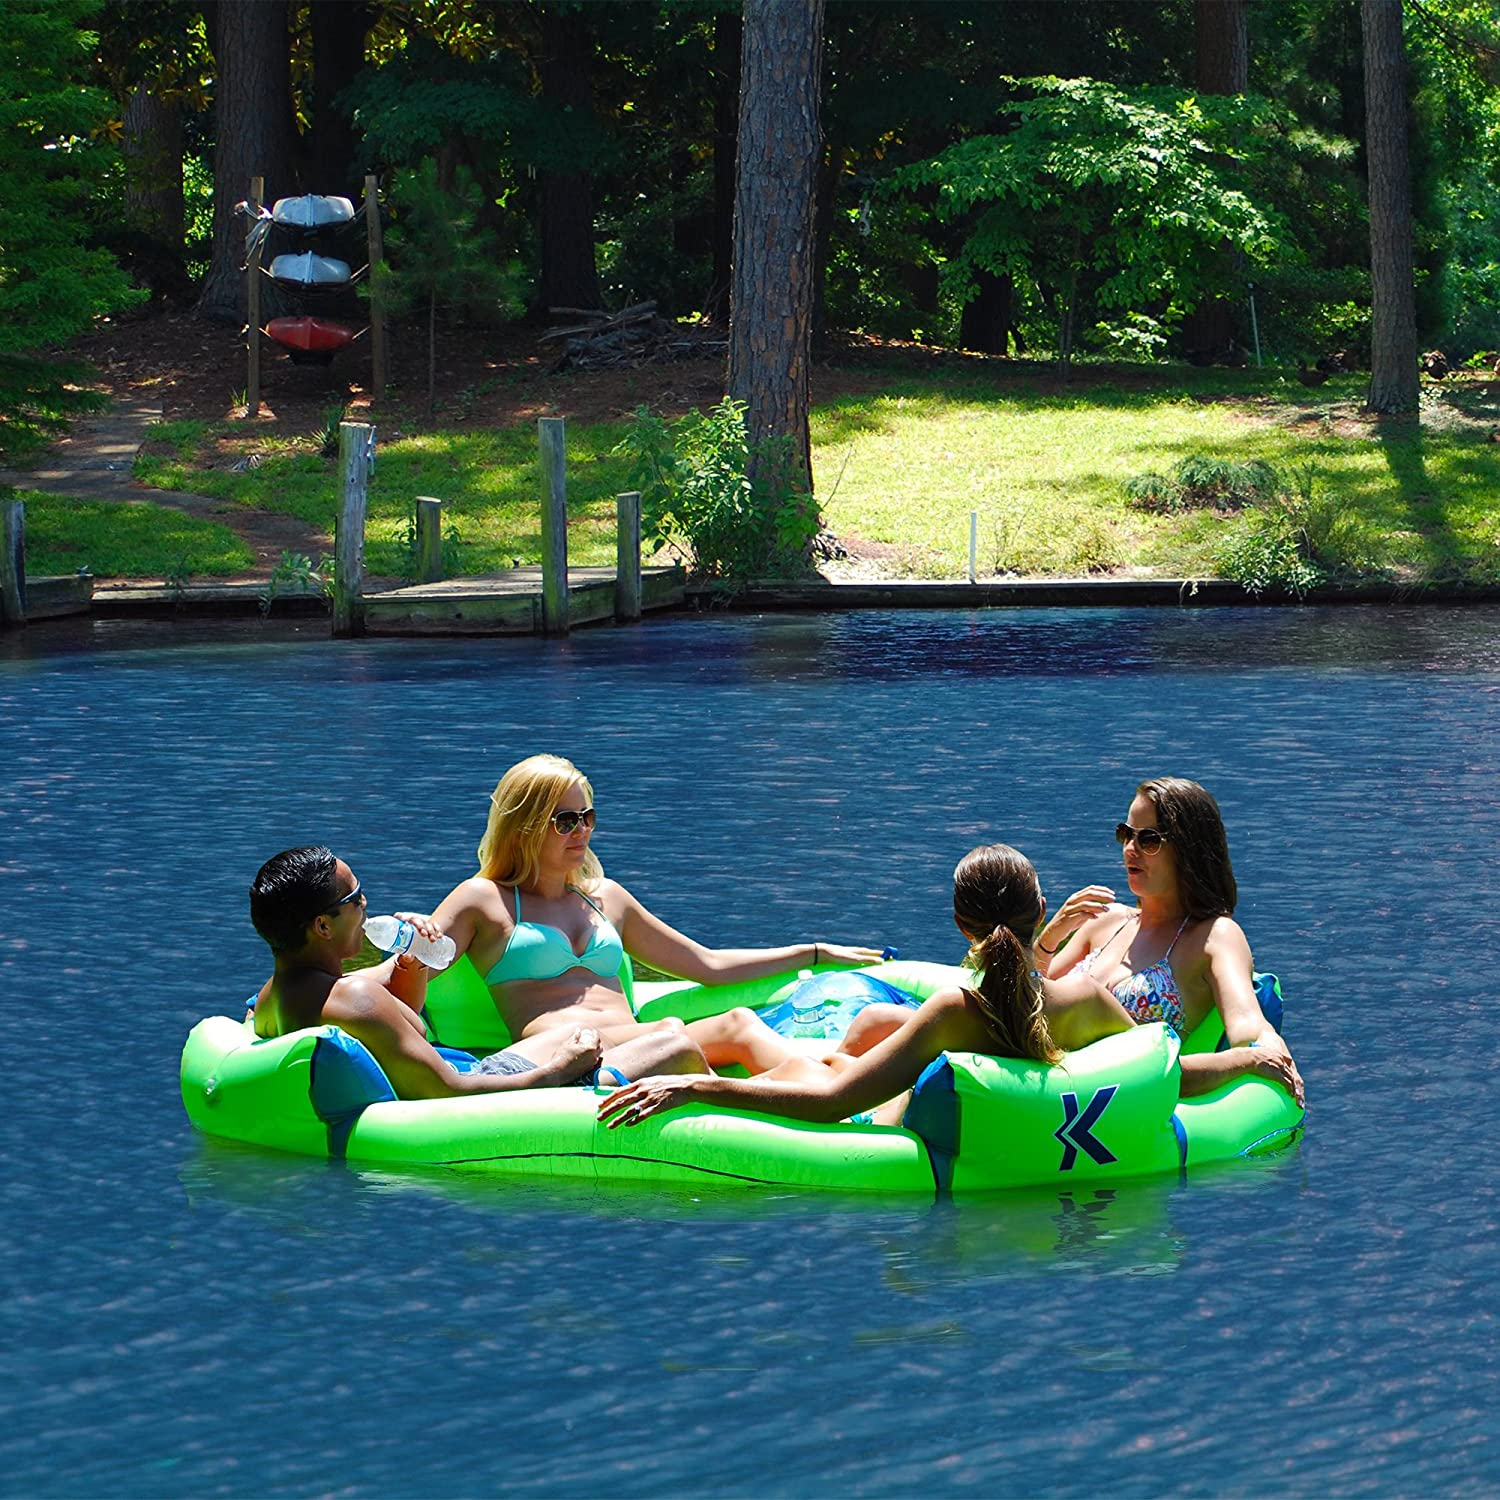 Amazon.com: Kelsyus 80108 Big Nauti - Tubo hinchable para ...